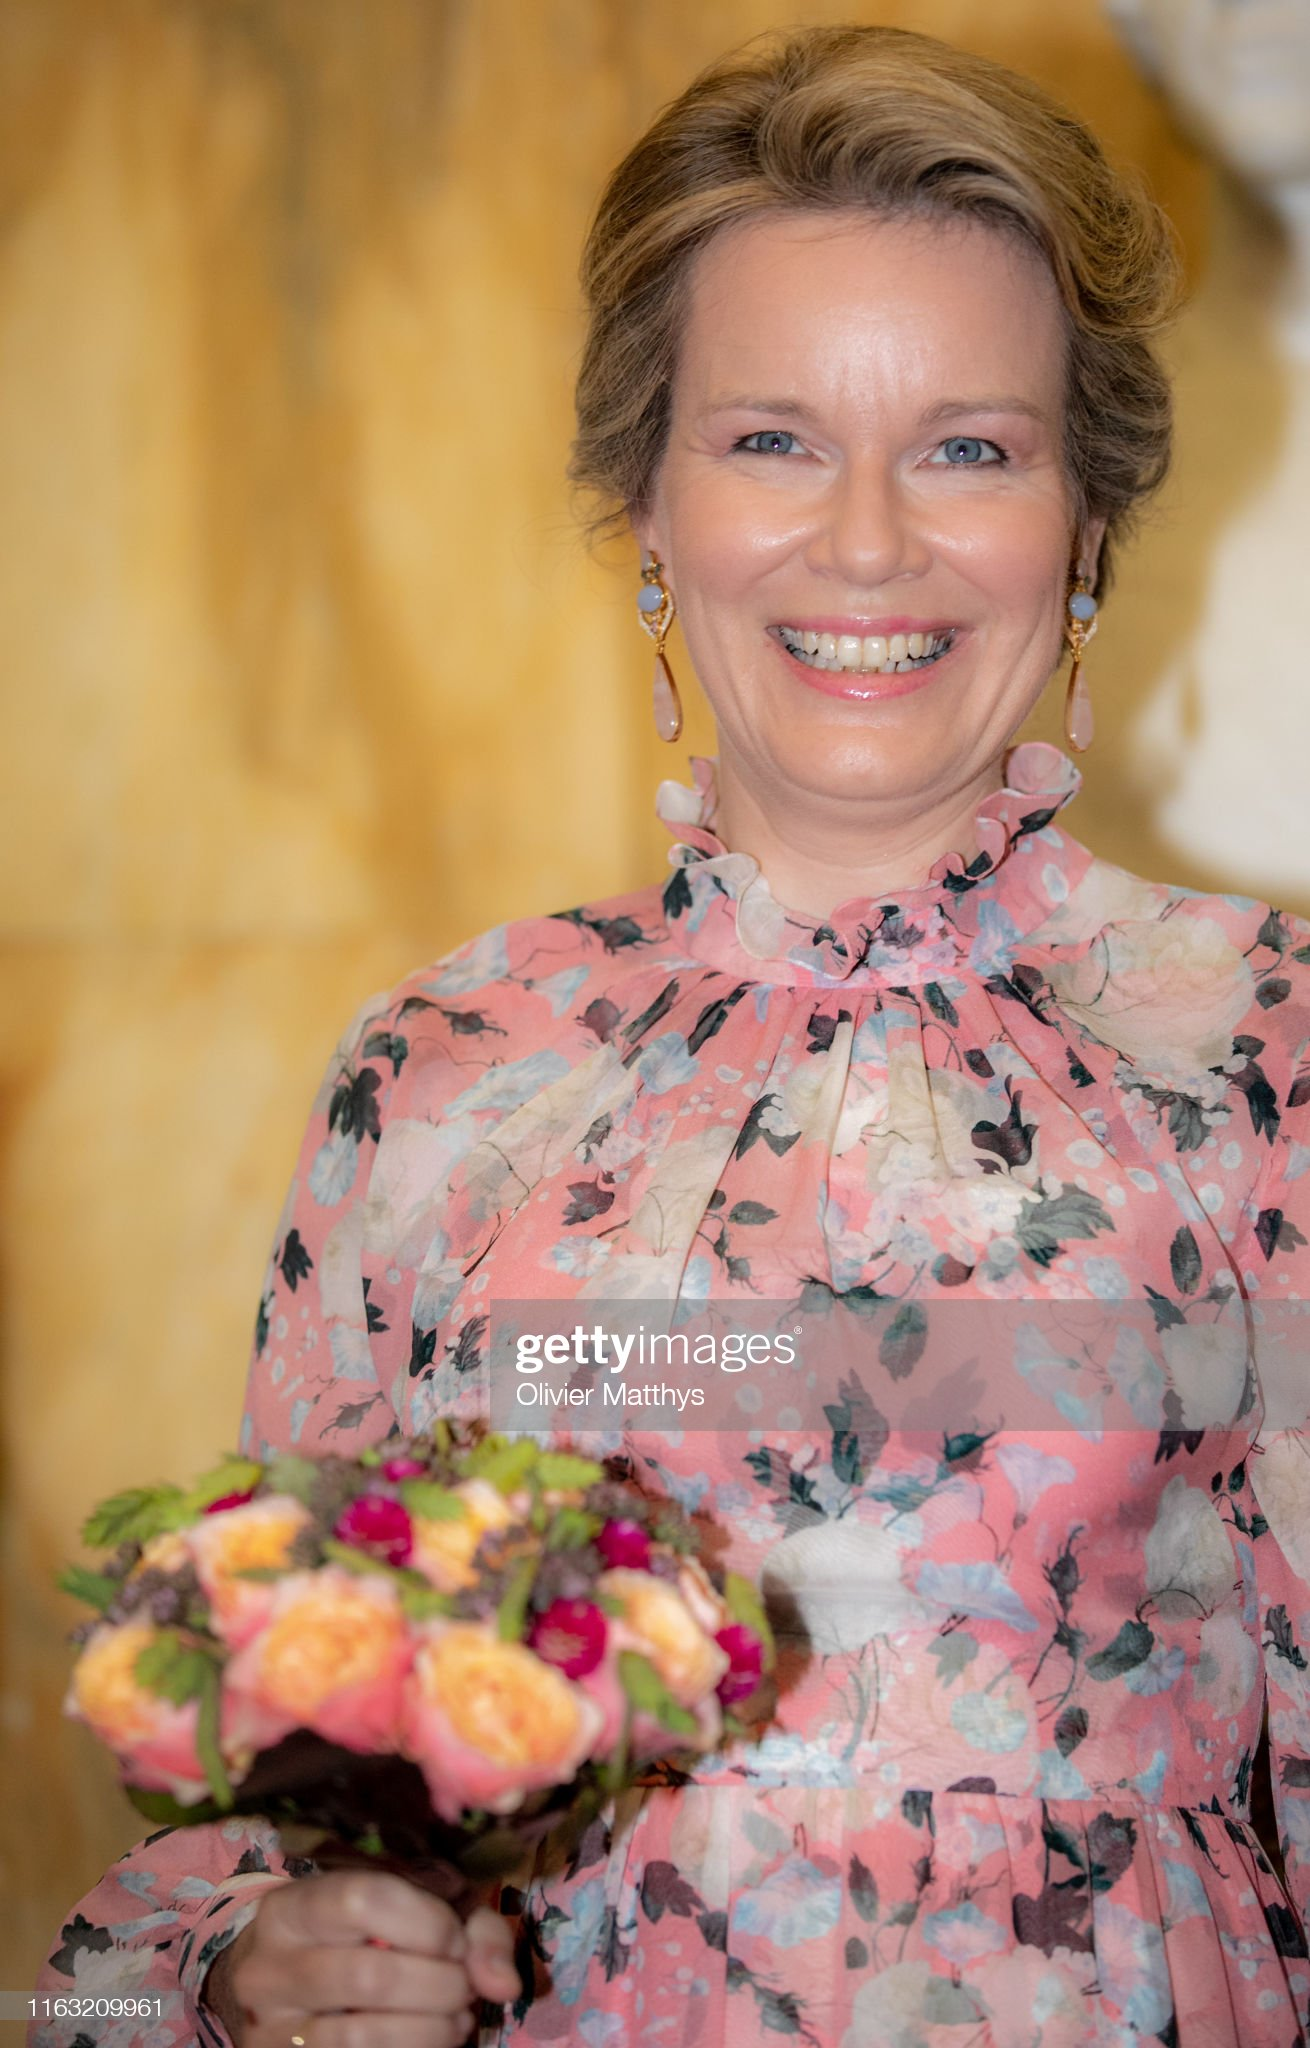 King Philippe Of Belgium And Queen Mathilde Of Belgium Attend The Preludium To The National Day : News Photo